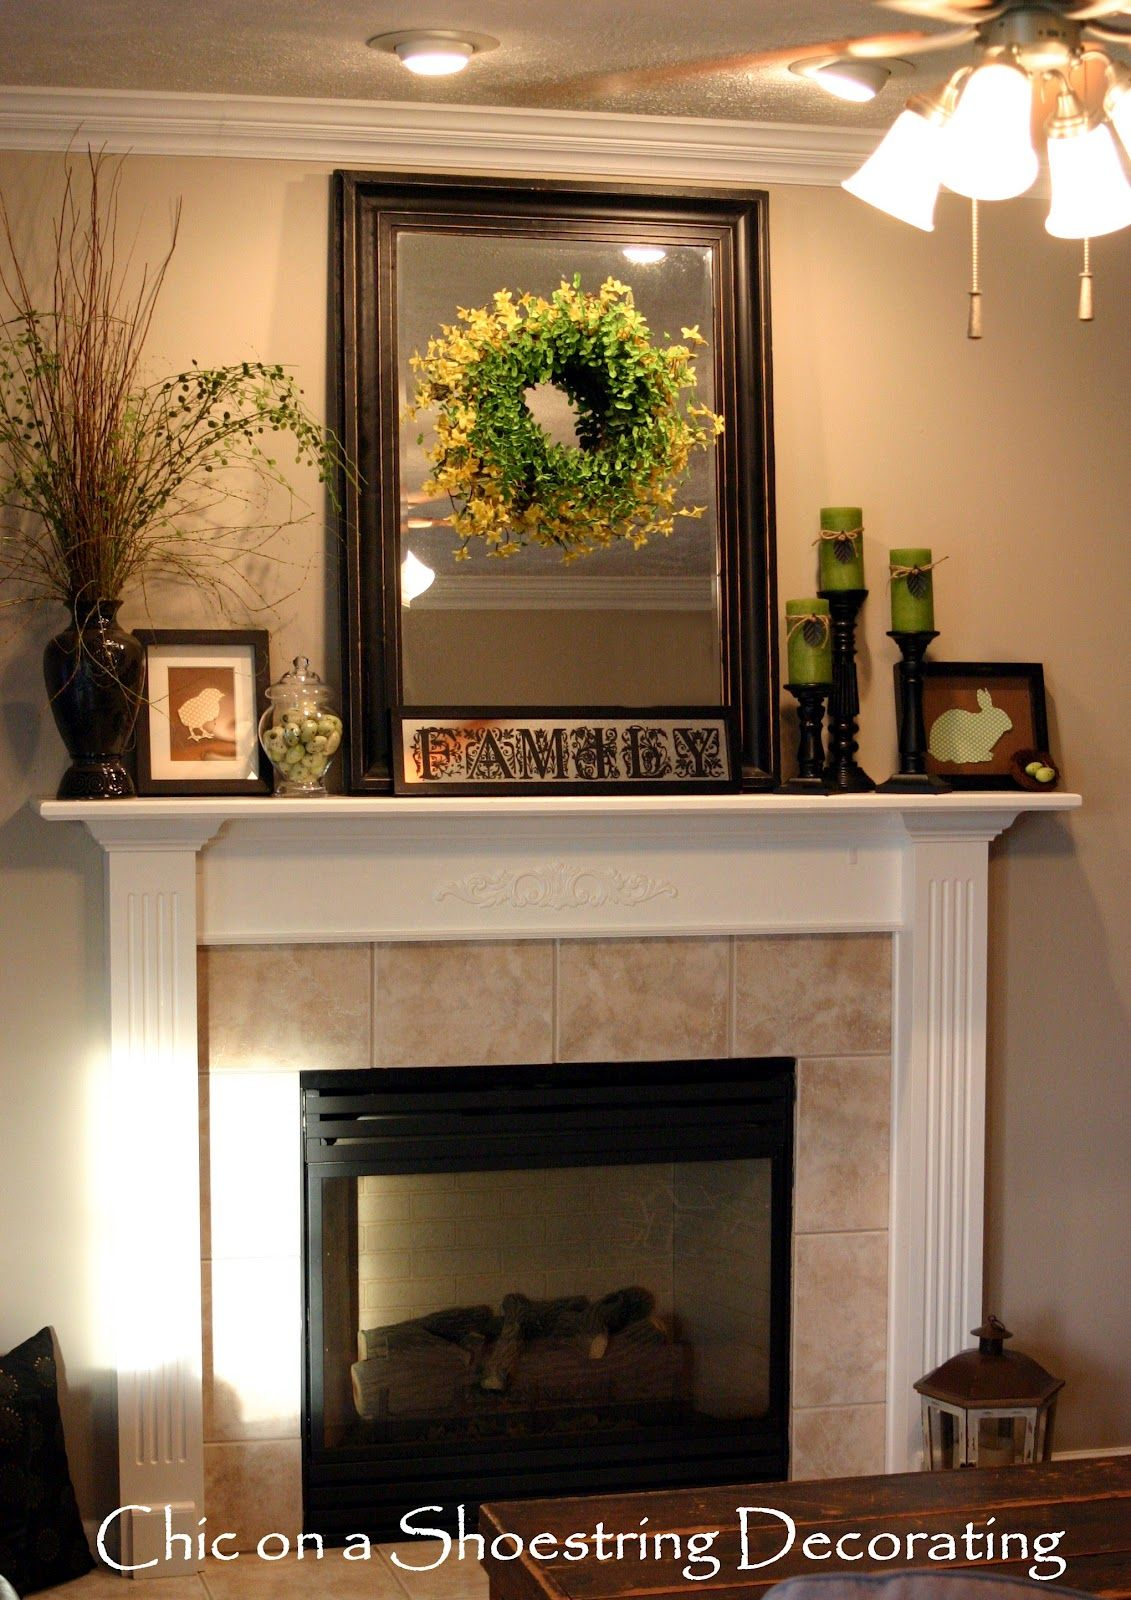 17 Best images about Easter   Mantels on Pinterest   Spring  Fireplace  mantels and Eggs. 17 Best images about Easter   Mantels on Pinterest   Spring